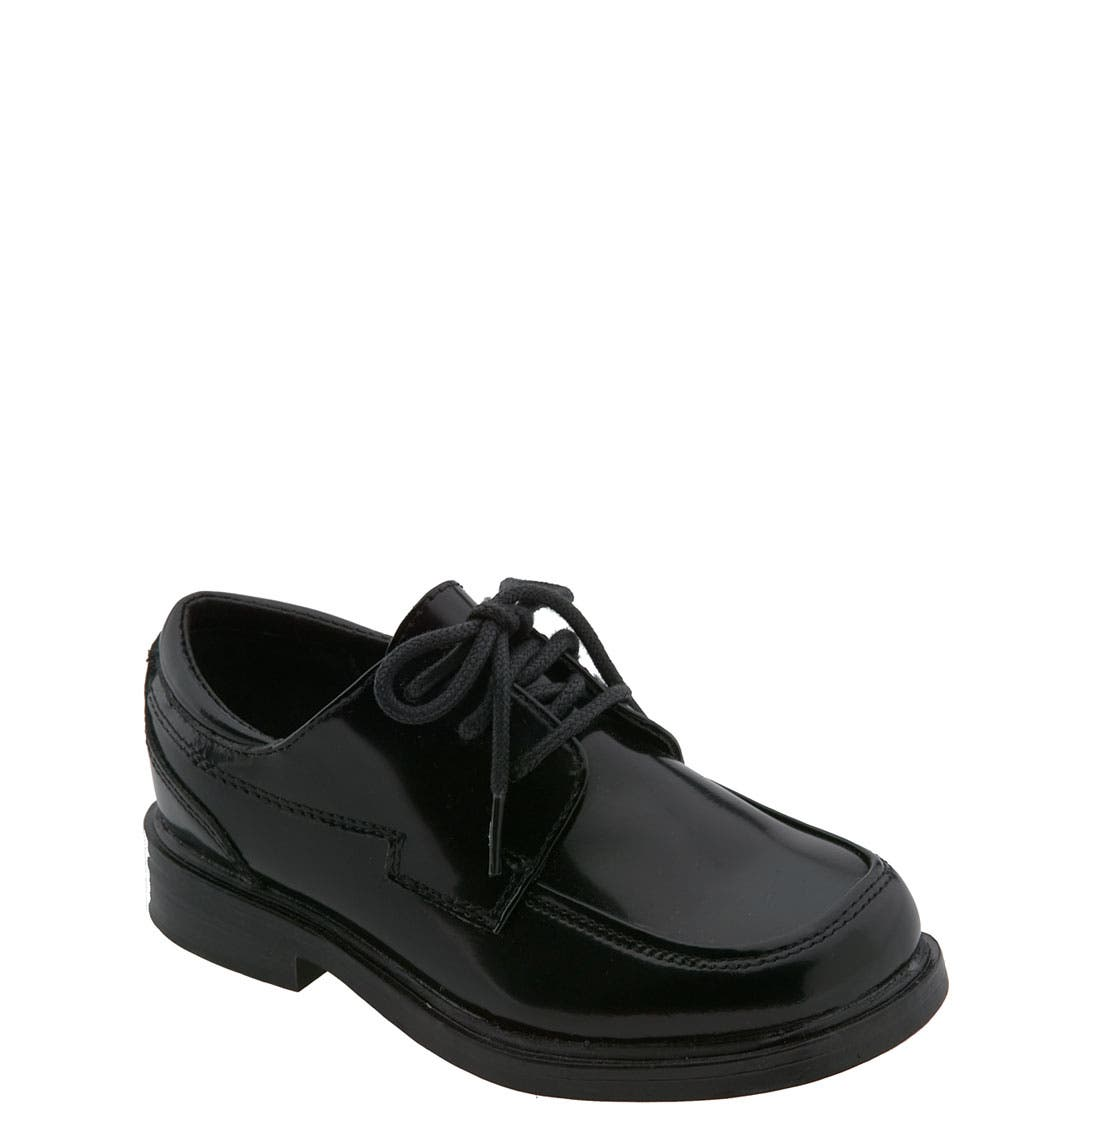 Main Image - Kenneth Cole Reaction 'T-Flex Jr' Oxford (Walker & Toddler)